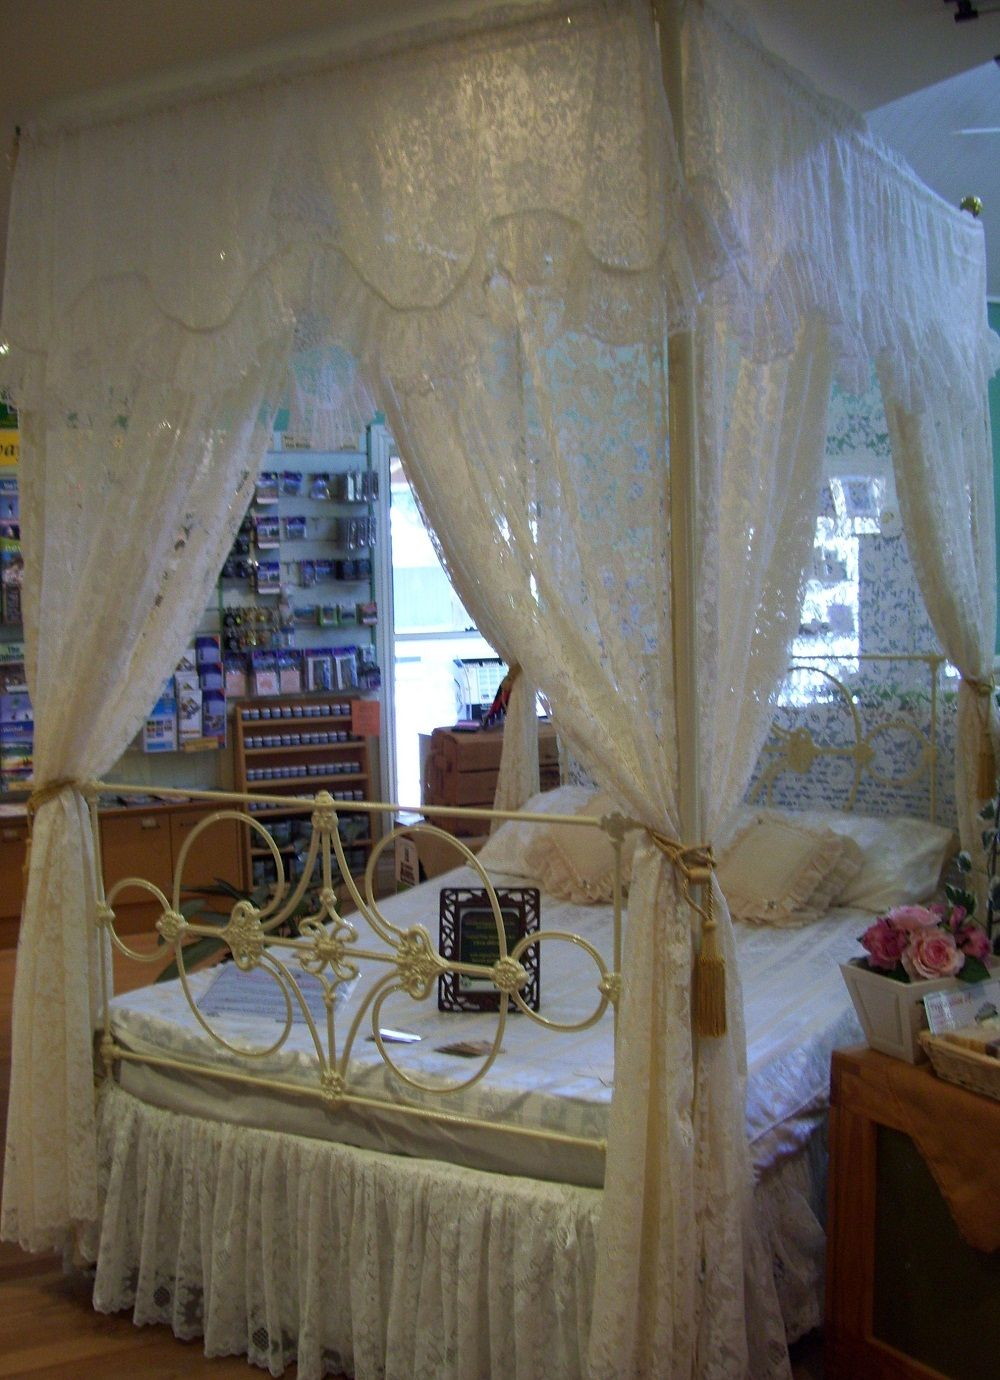 Circa 1860 to 1880 Four Poster, dressed in lace curtains